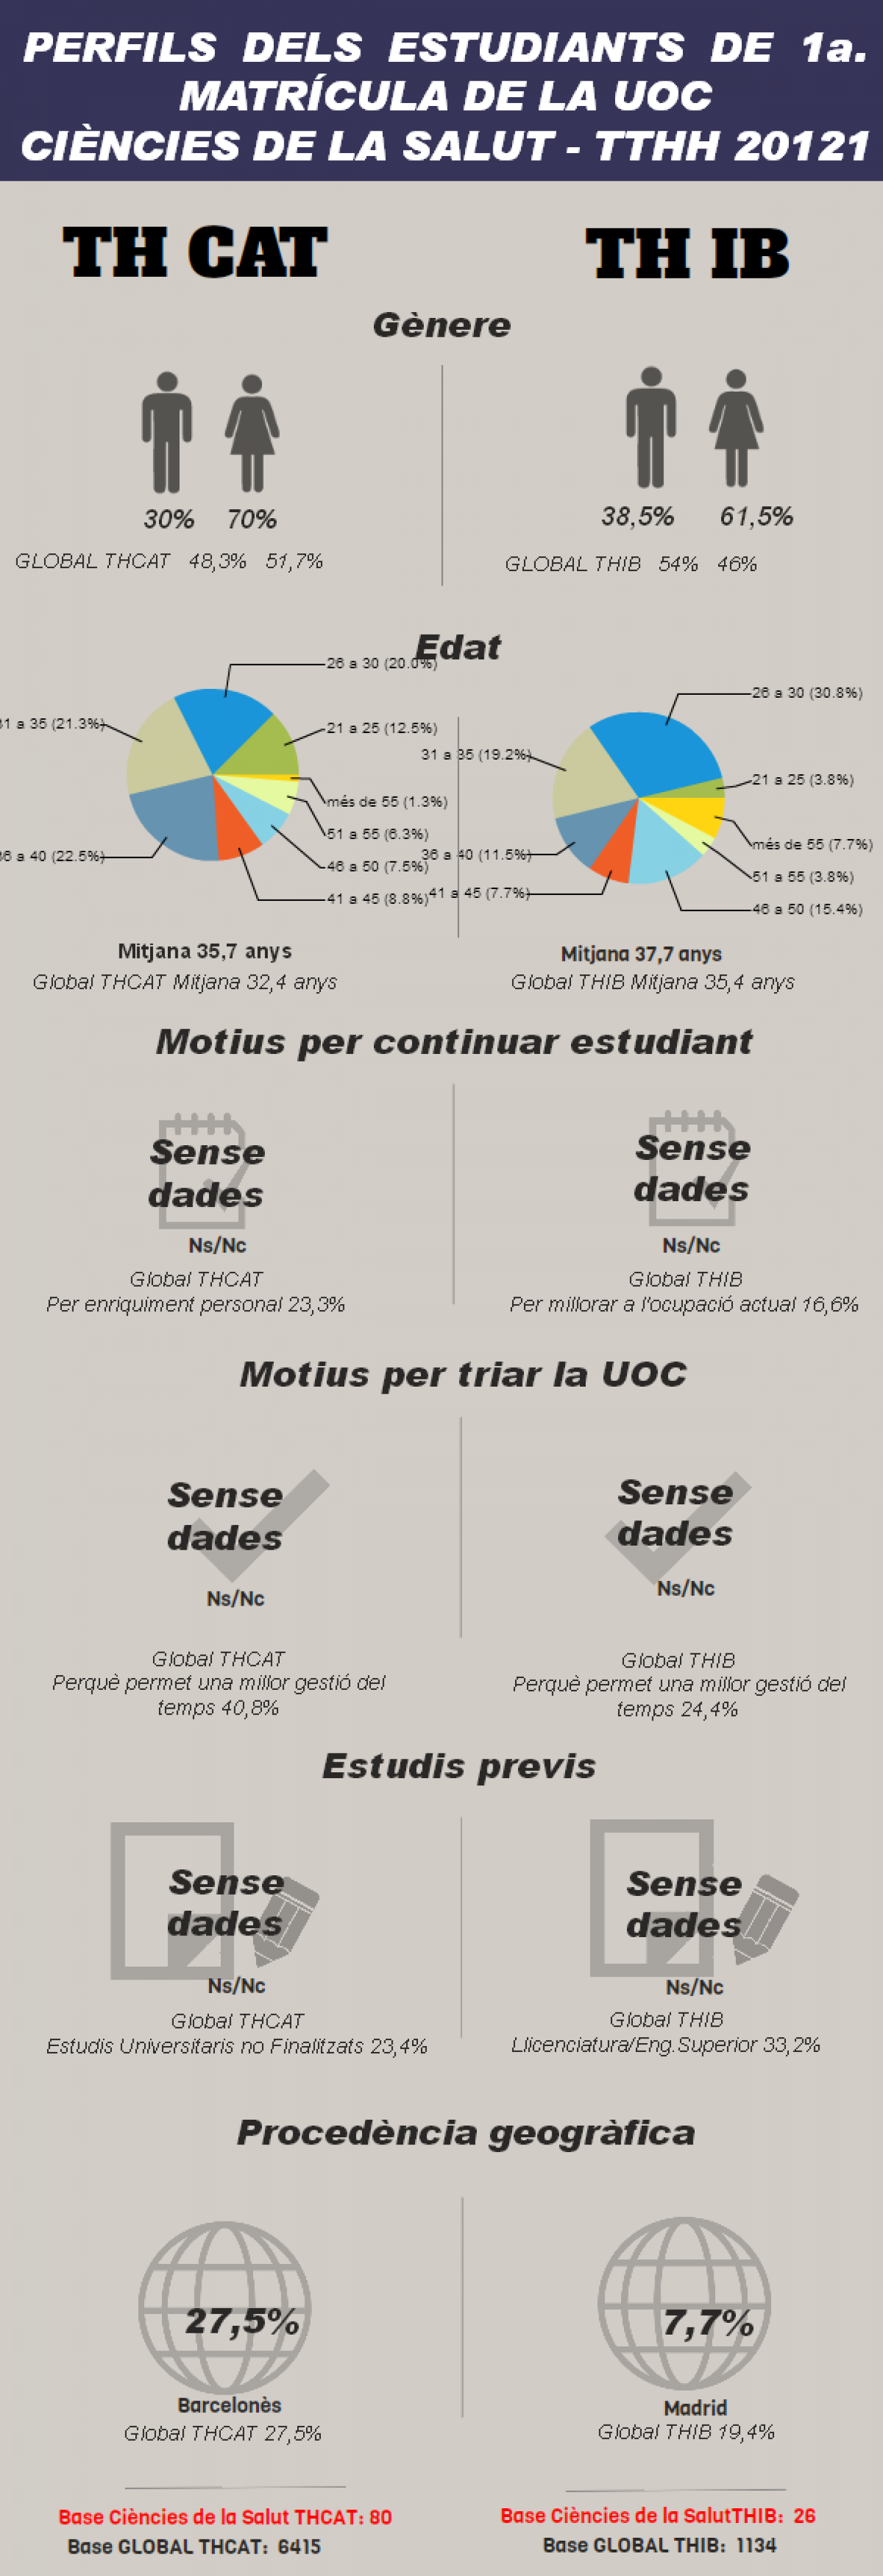 Perfil estudiants Infographic